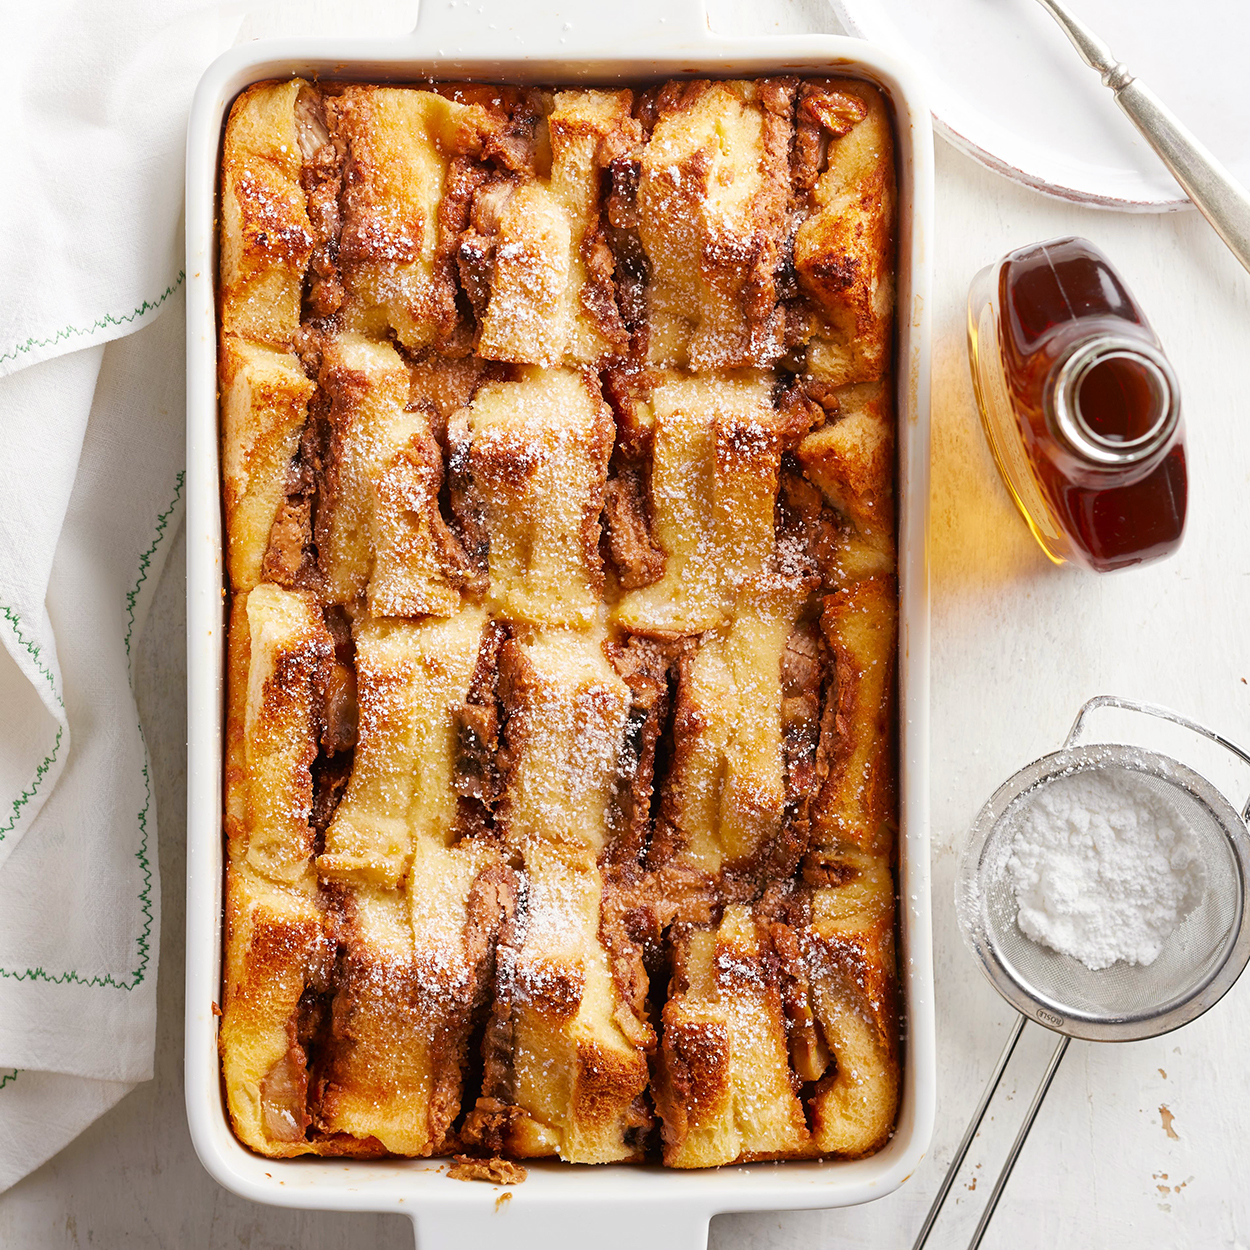 Chocolate-Banana French Toast Bake